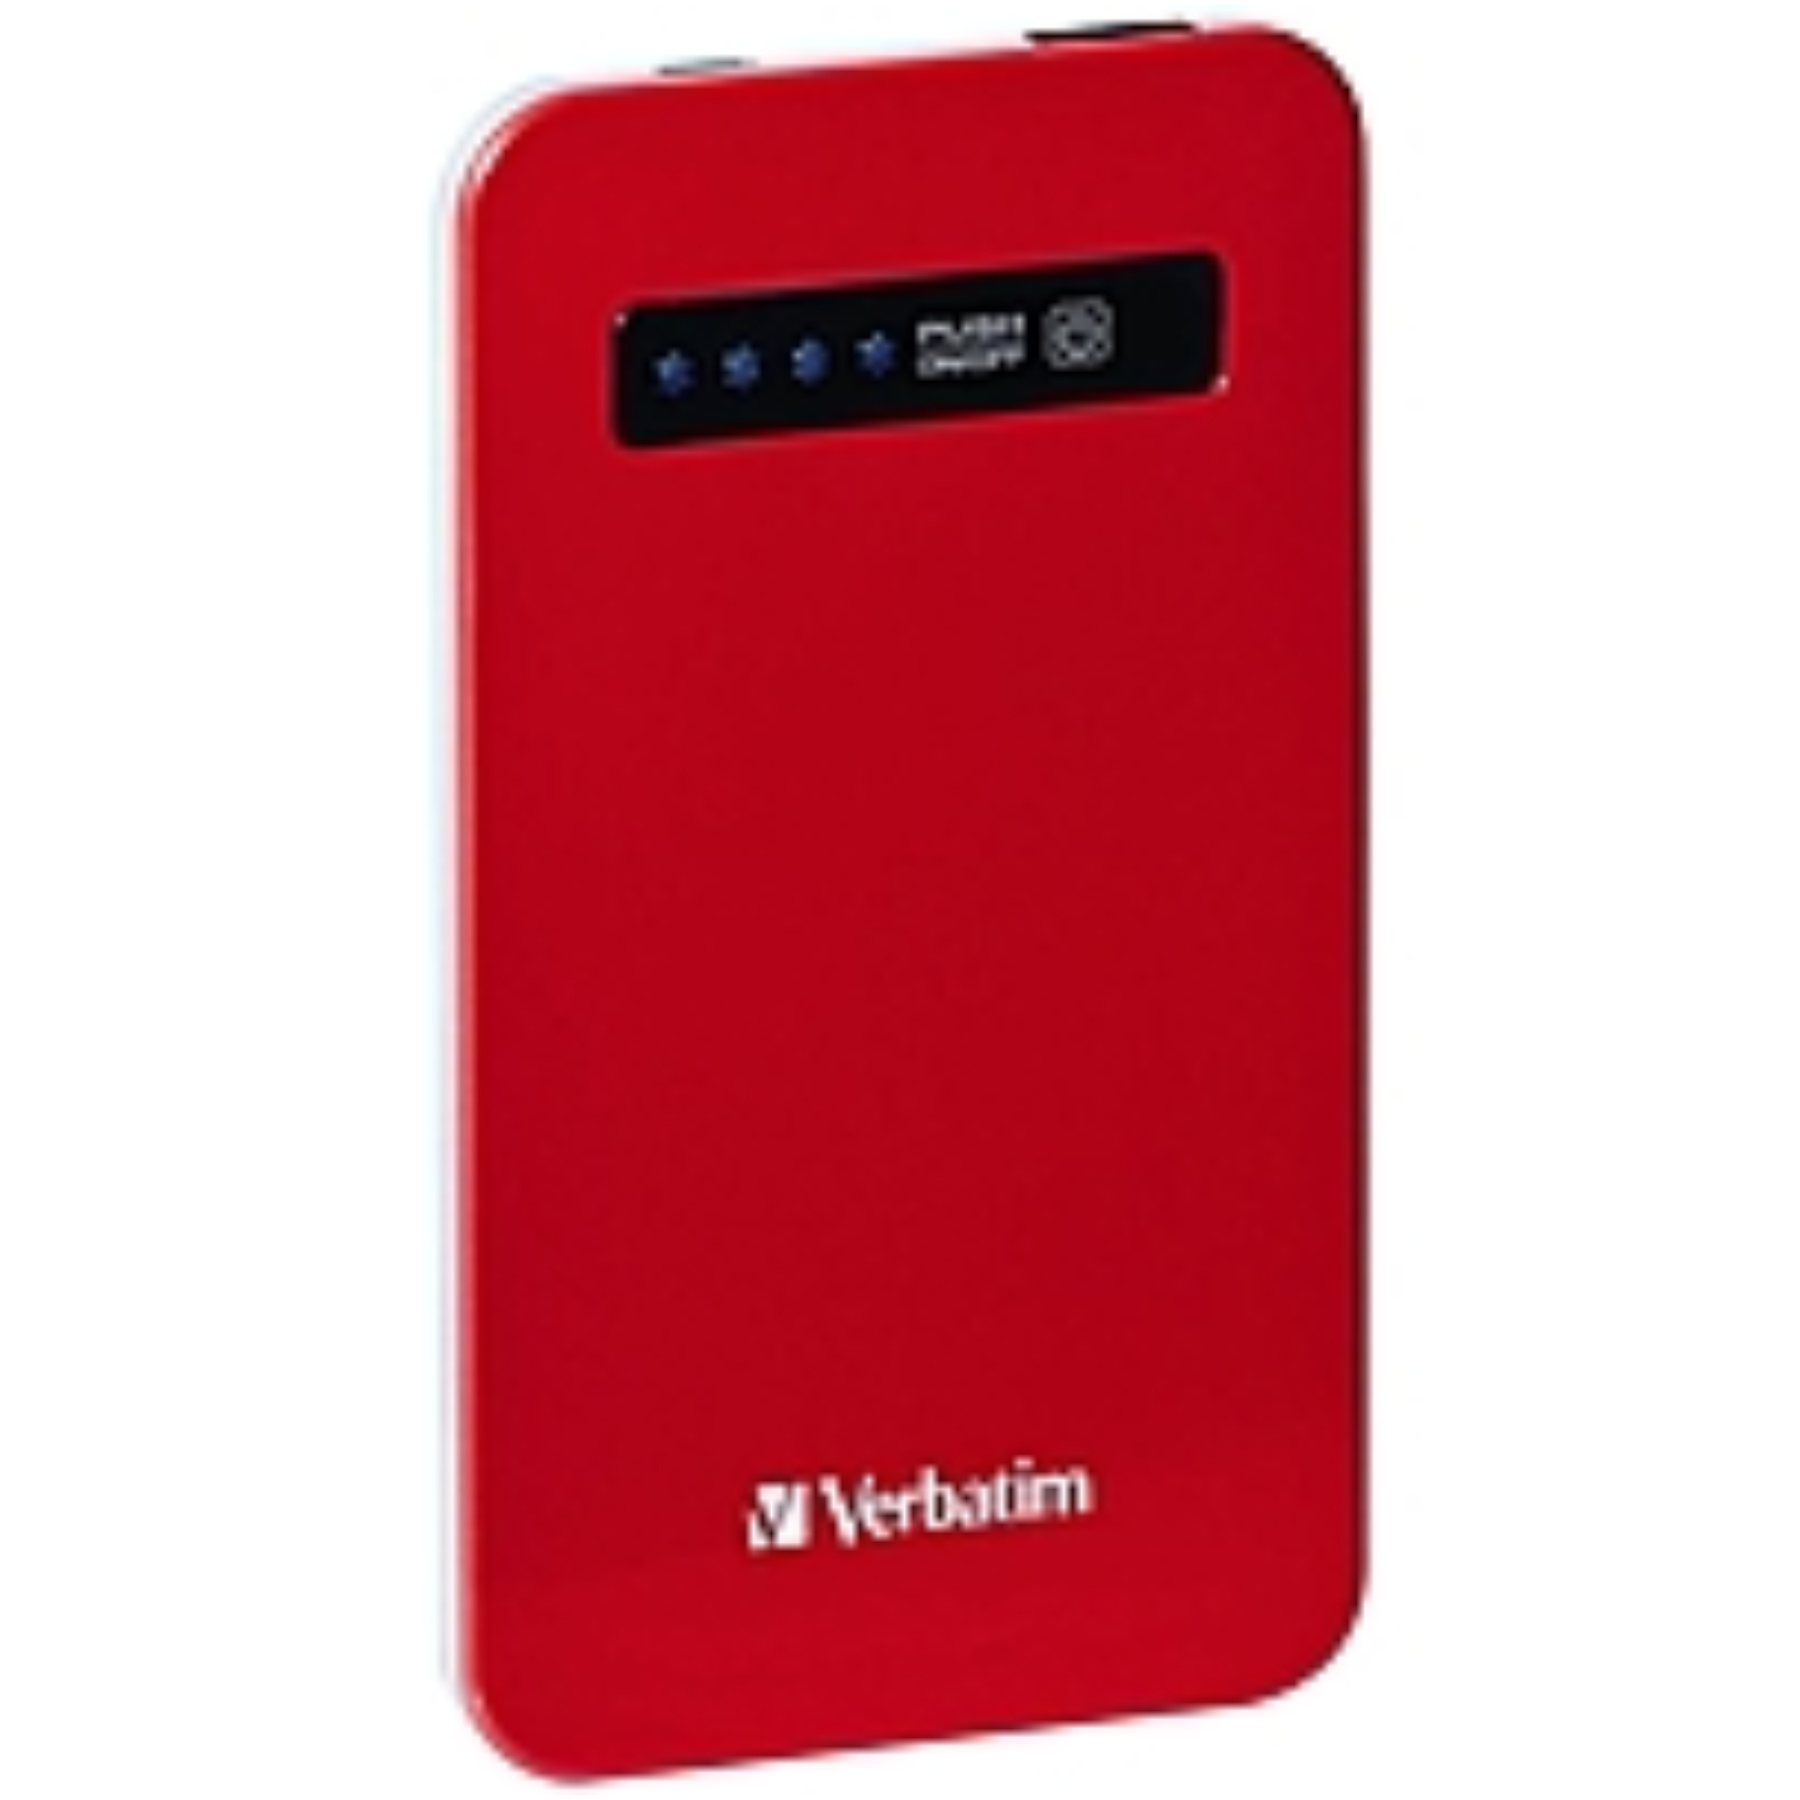 Ultra-Slim Power Pack 4200mah Red Taa Compliant 98453